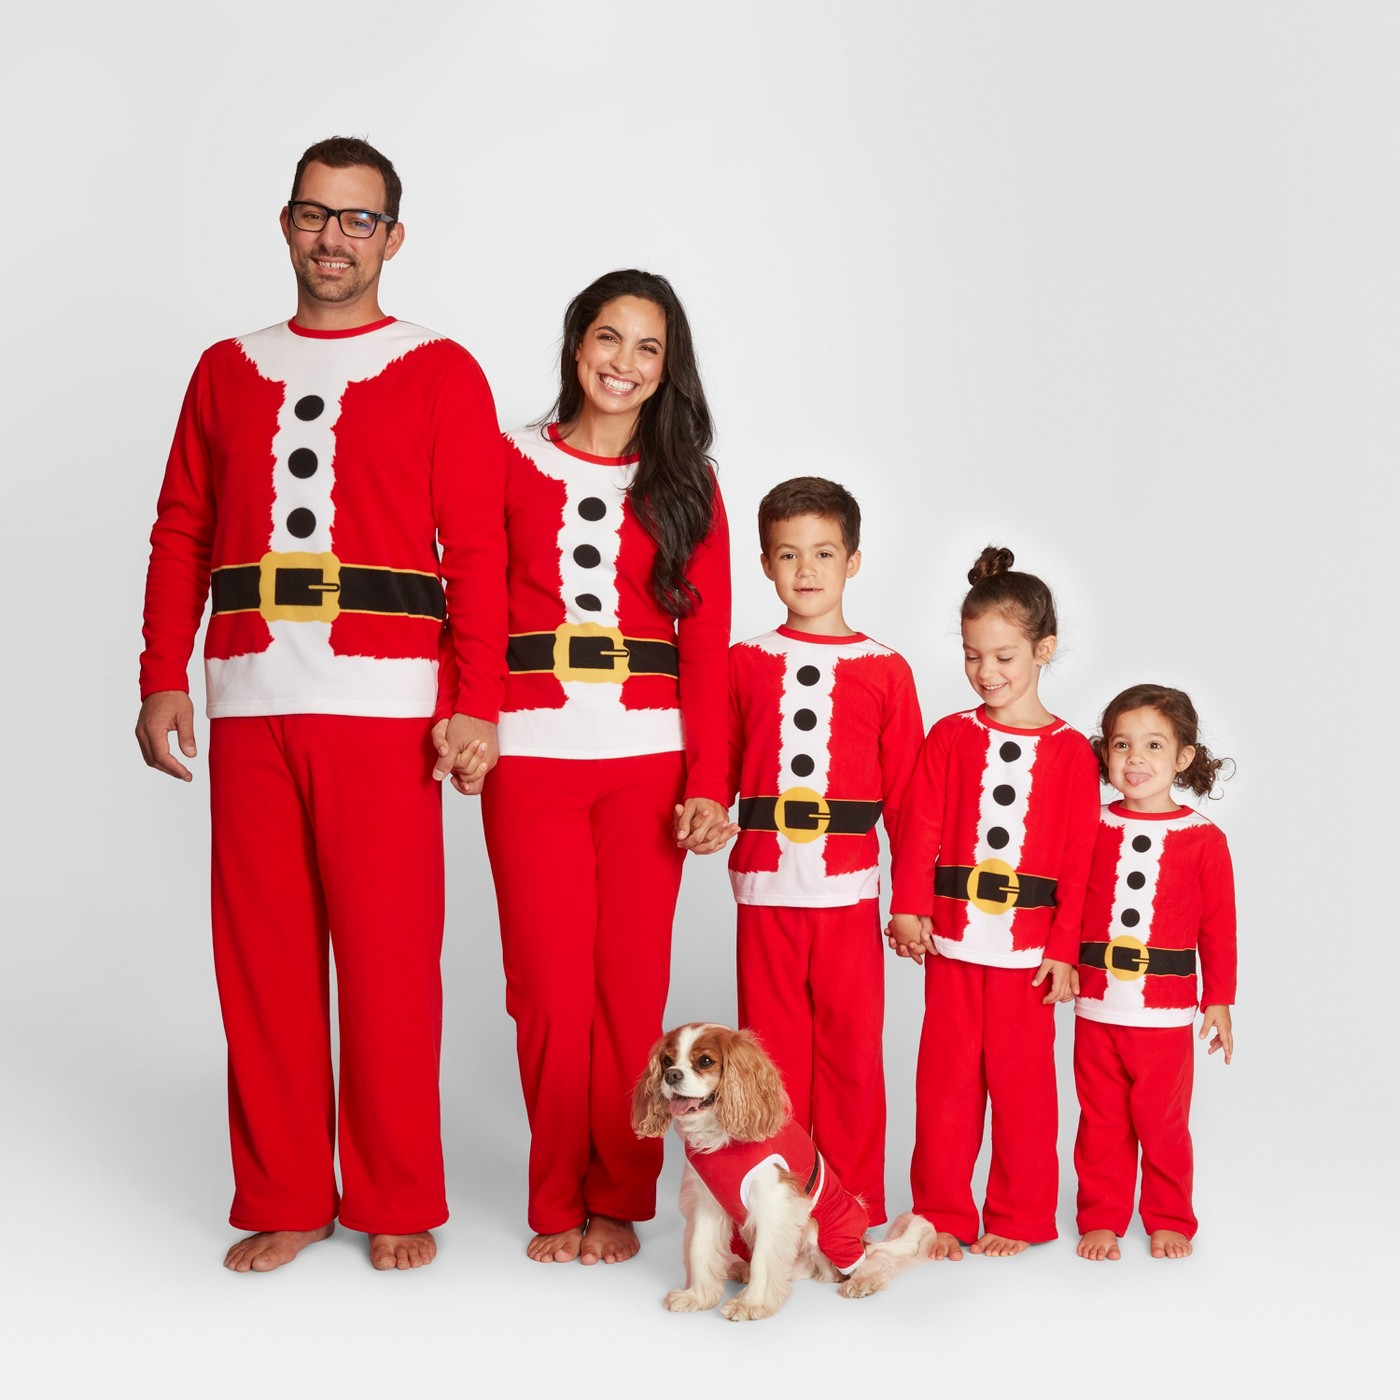 Family Christmas pajamas - love the Santa pajamas kellyelko.com #christmaspajamas #christmas #christmastraditions